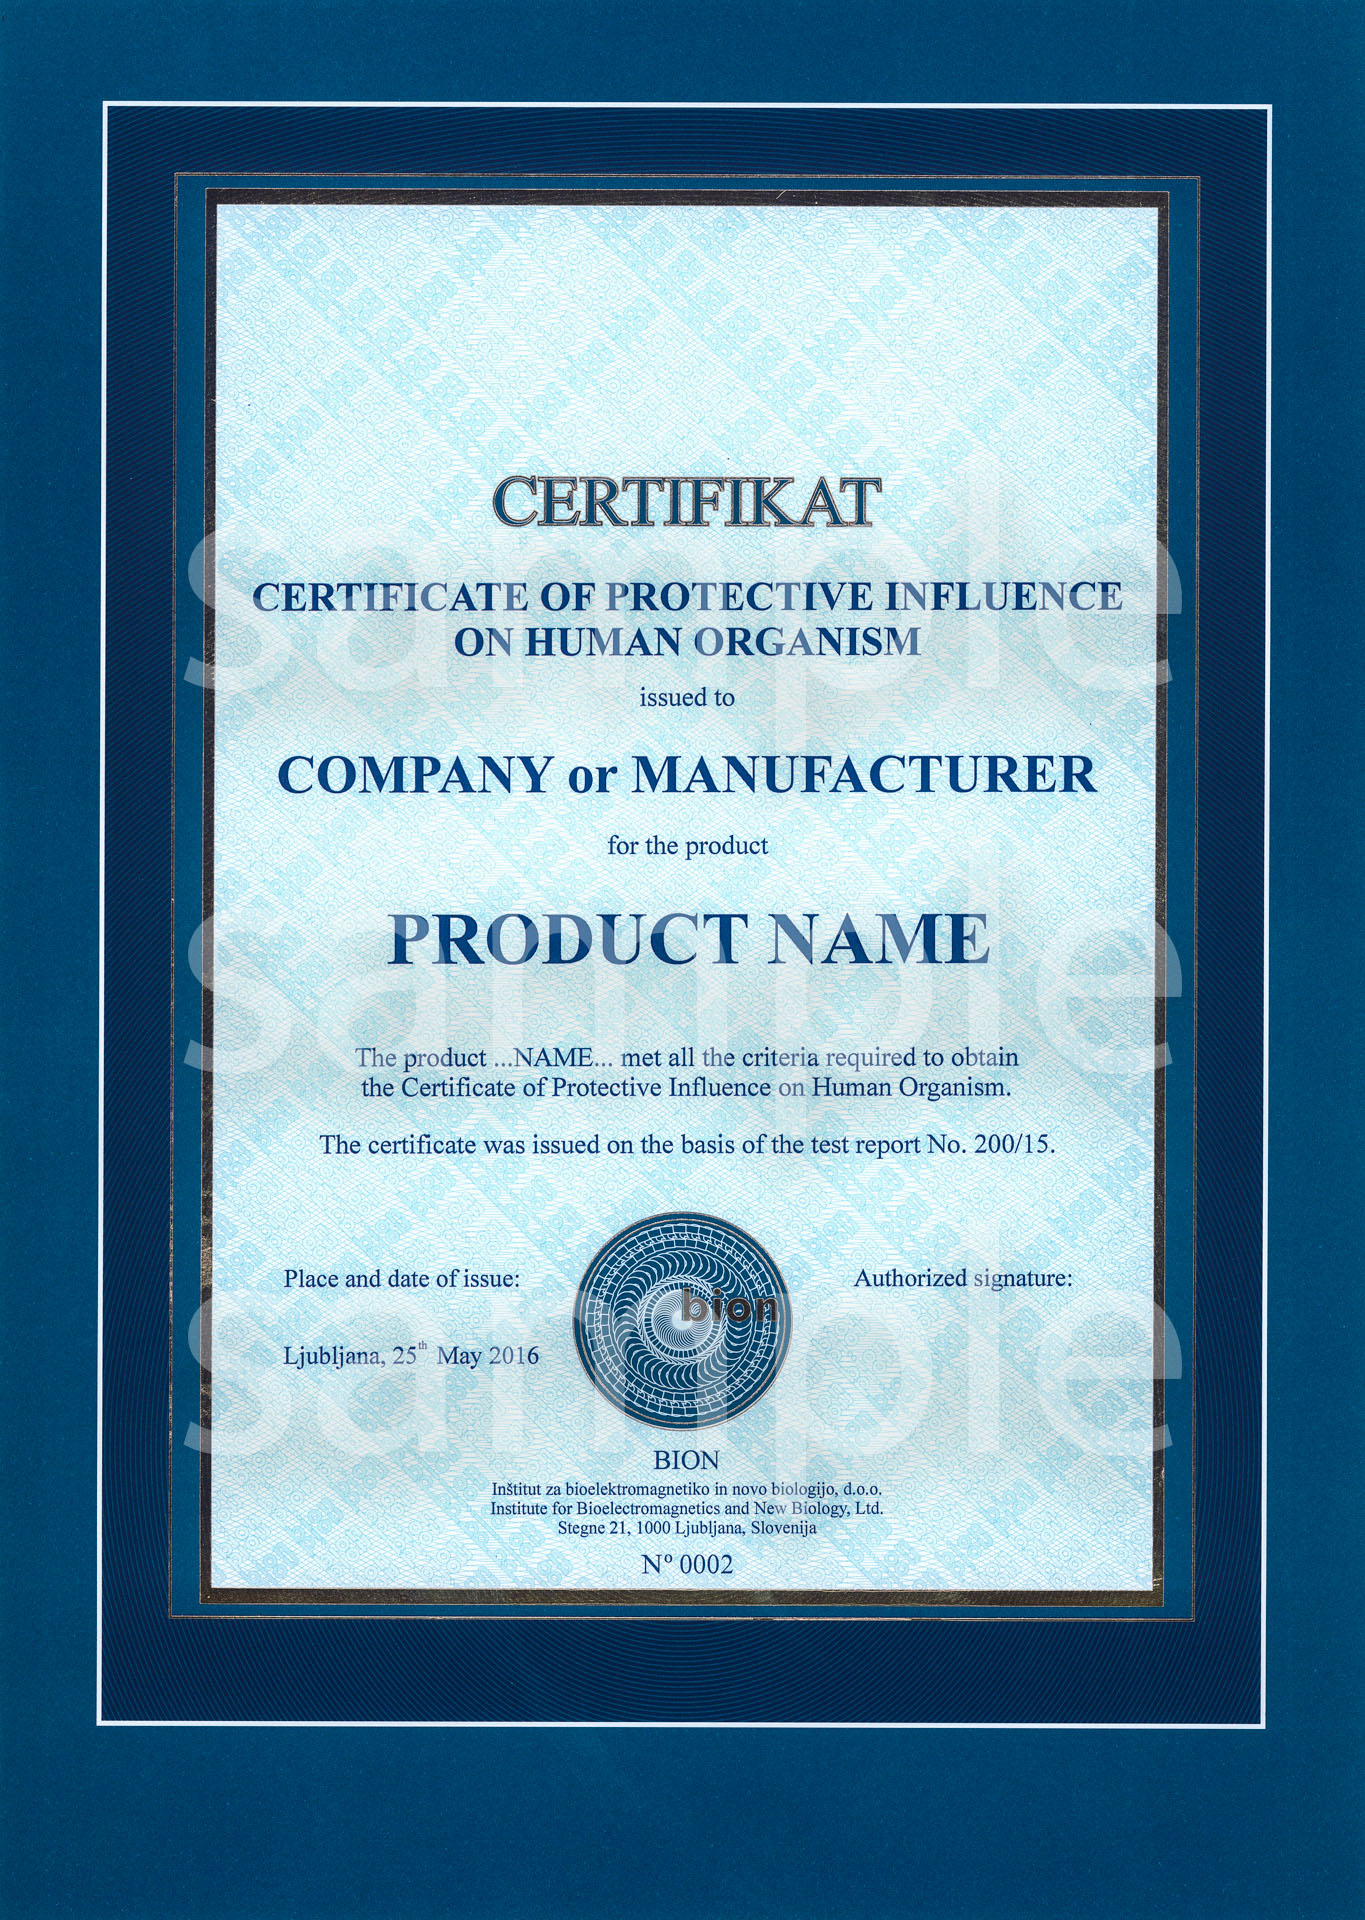 bion_institute-certifikat_of_protective_influence